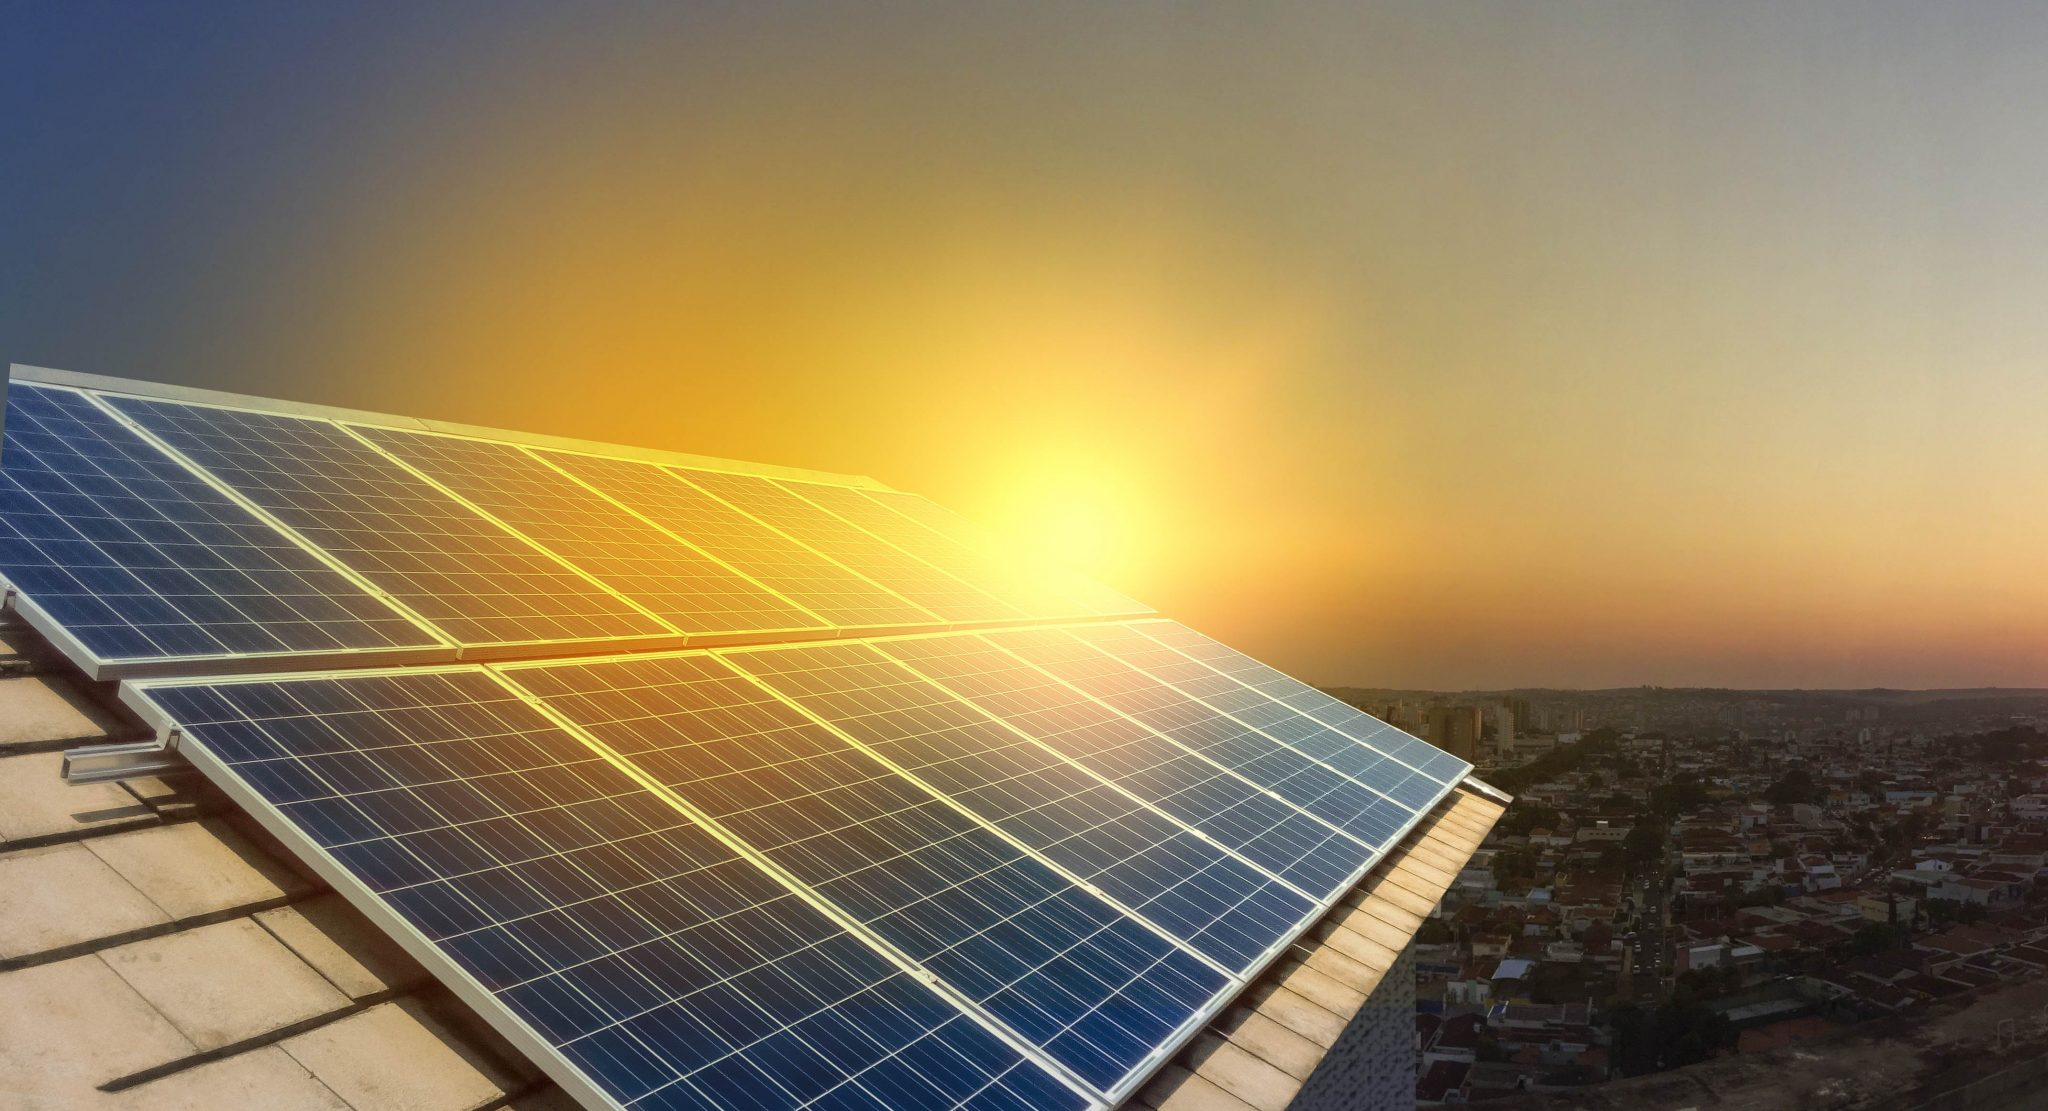 solar-power-panels-on-a-roof-at-sunset.jpg (4282×2323)